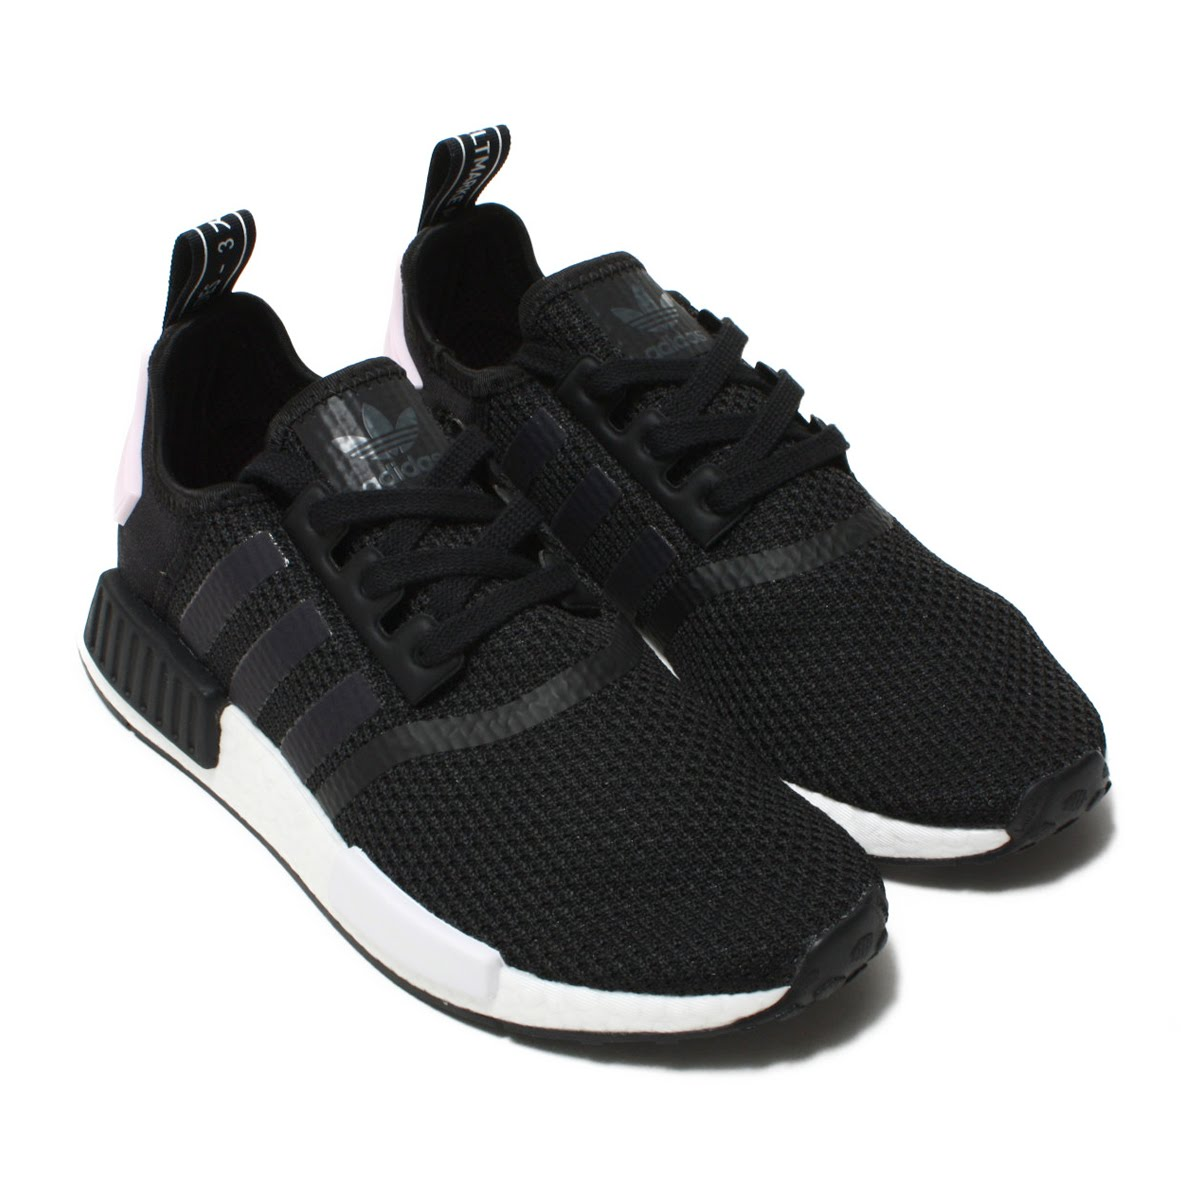 huge discount c9d24 14e5a adidas Originals NMD_R1 W (Adidas originals N M D R1W) CORE BLACK/RUNNING  WHITE/CLEAR PINK 18FA-I